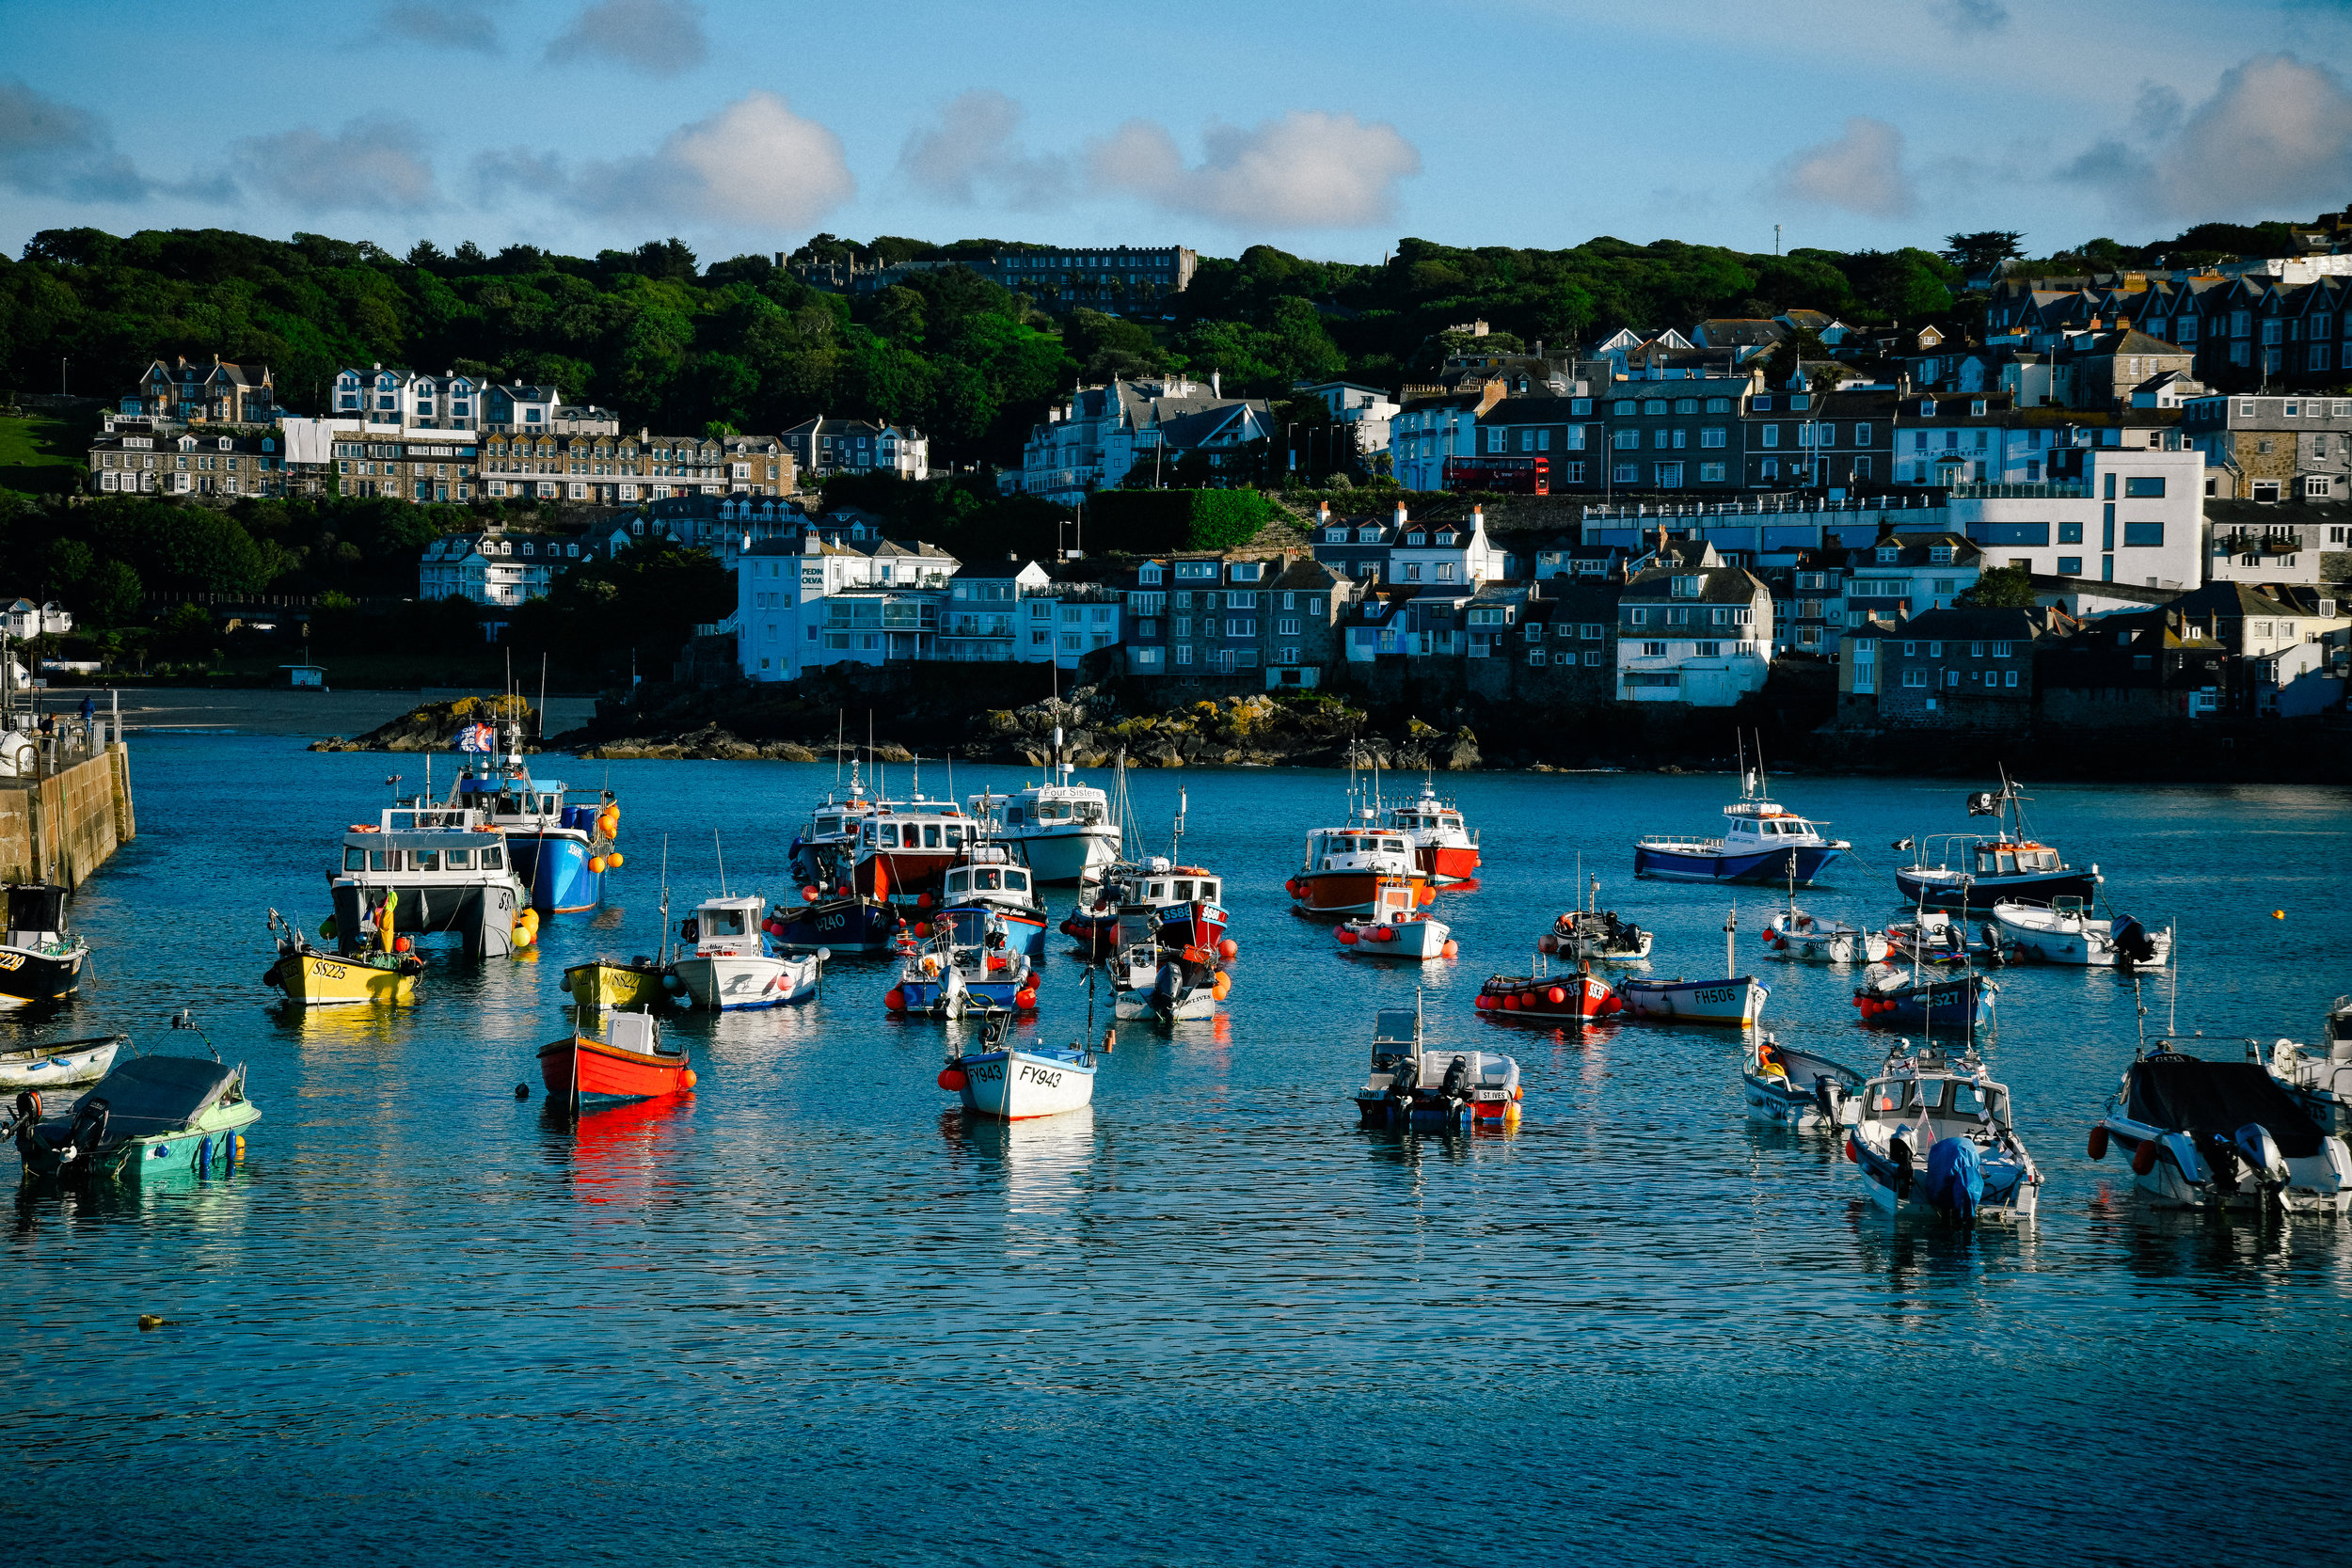 boats in the dock in st. ives